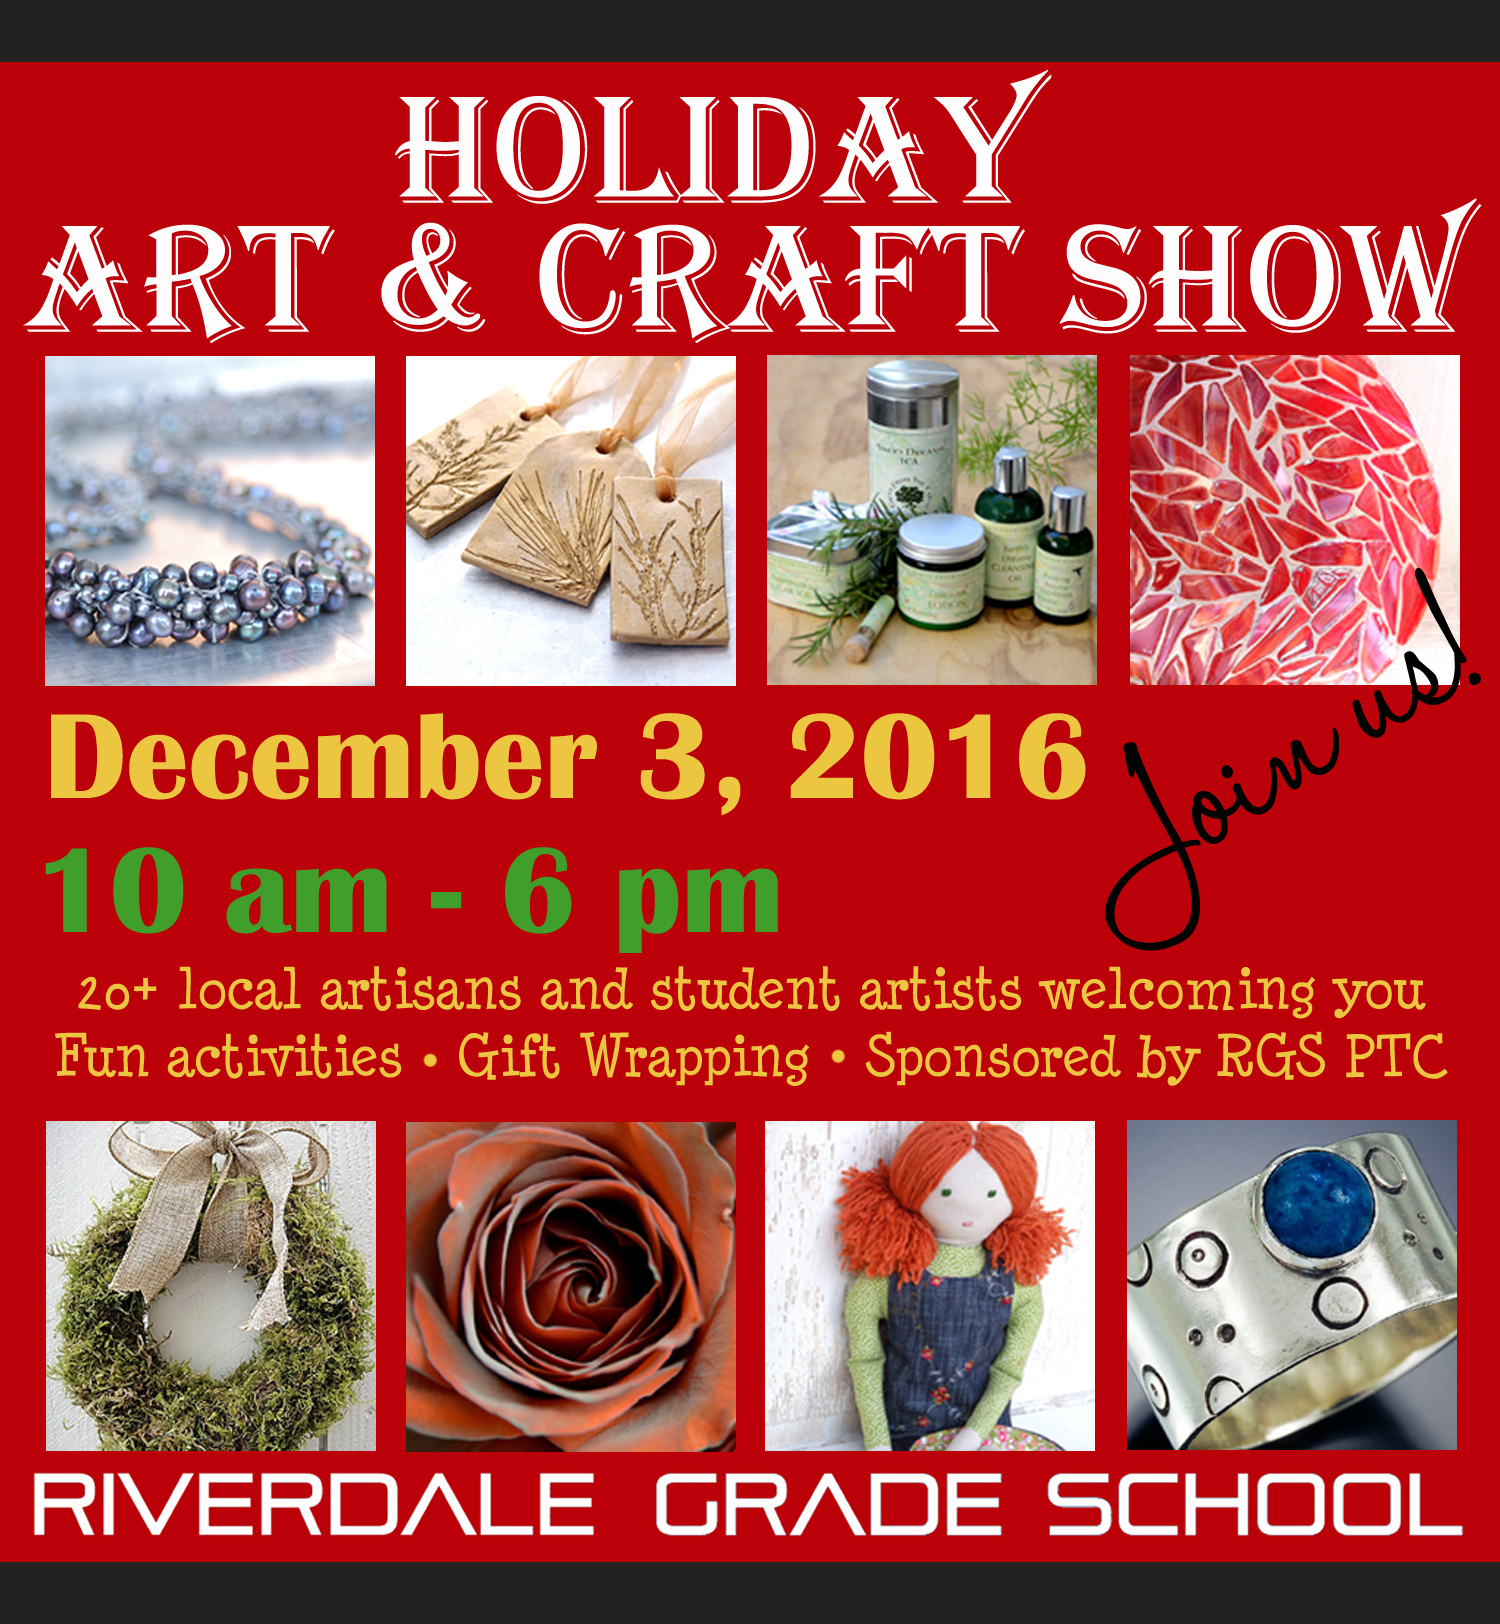 Holiday Art & Craft Show at Riverdale Grade School